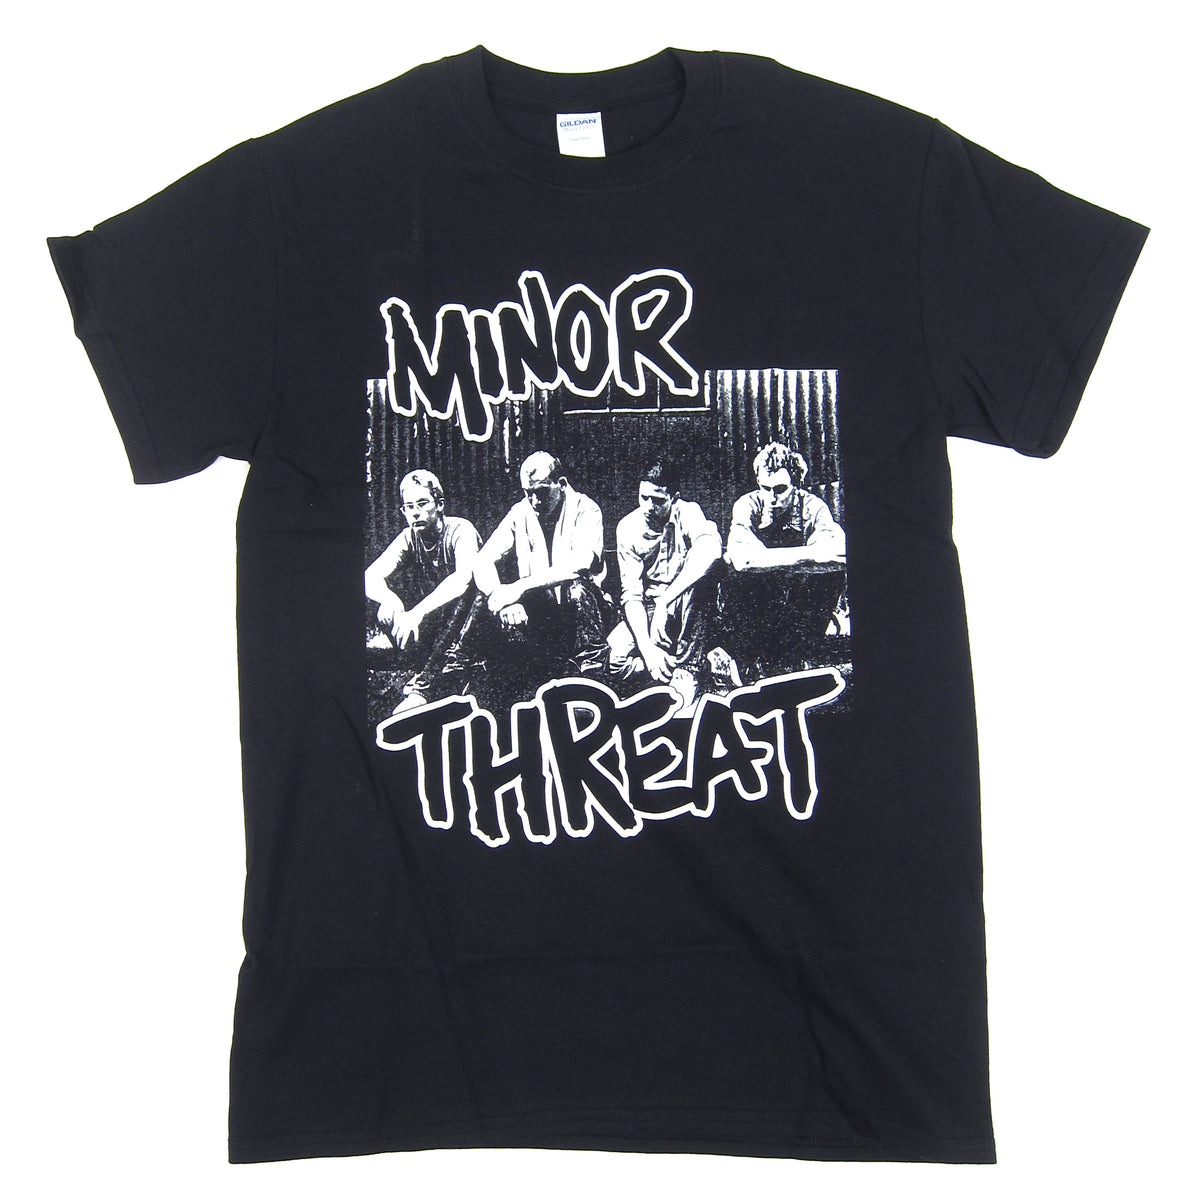 Minor Threat: Xerox Shirt - Black